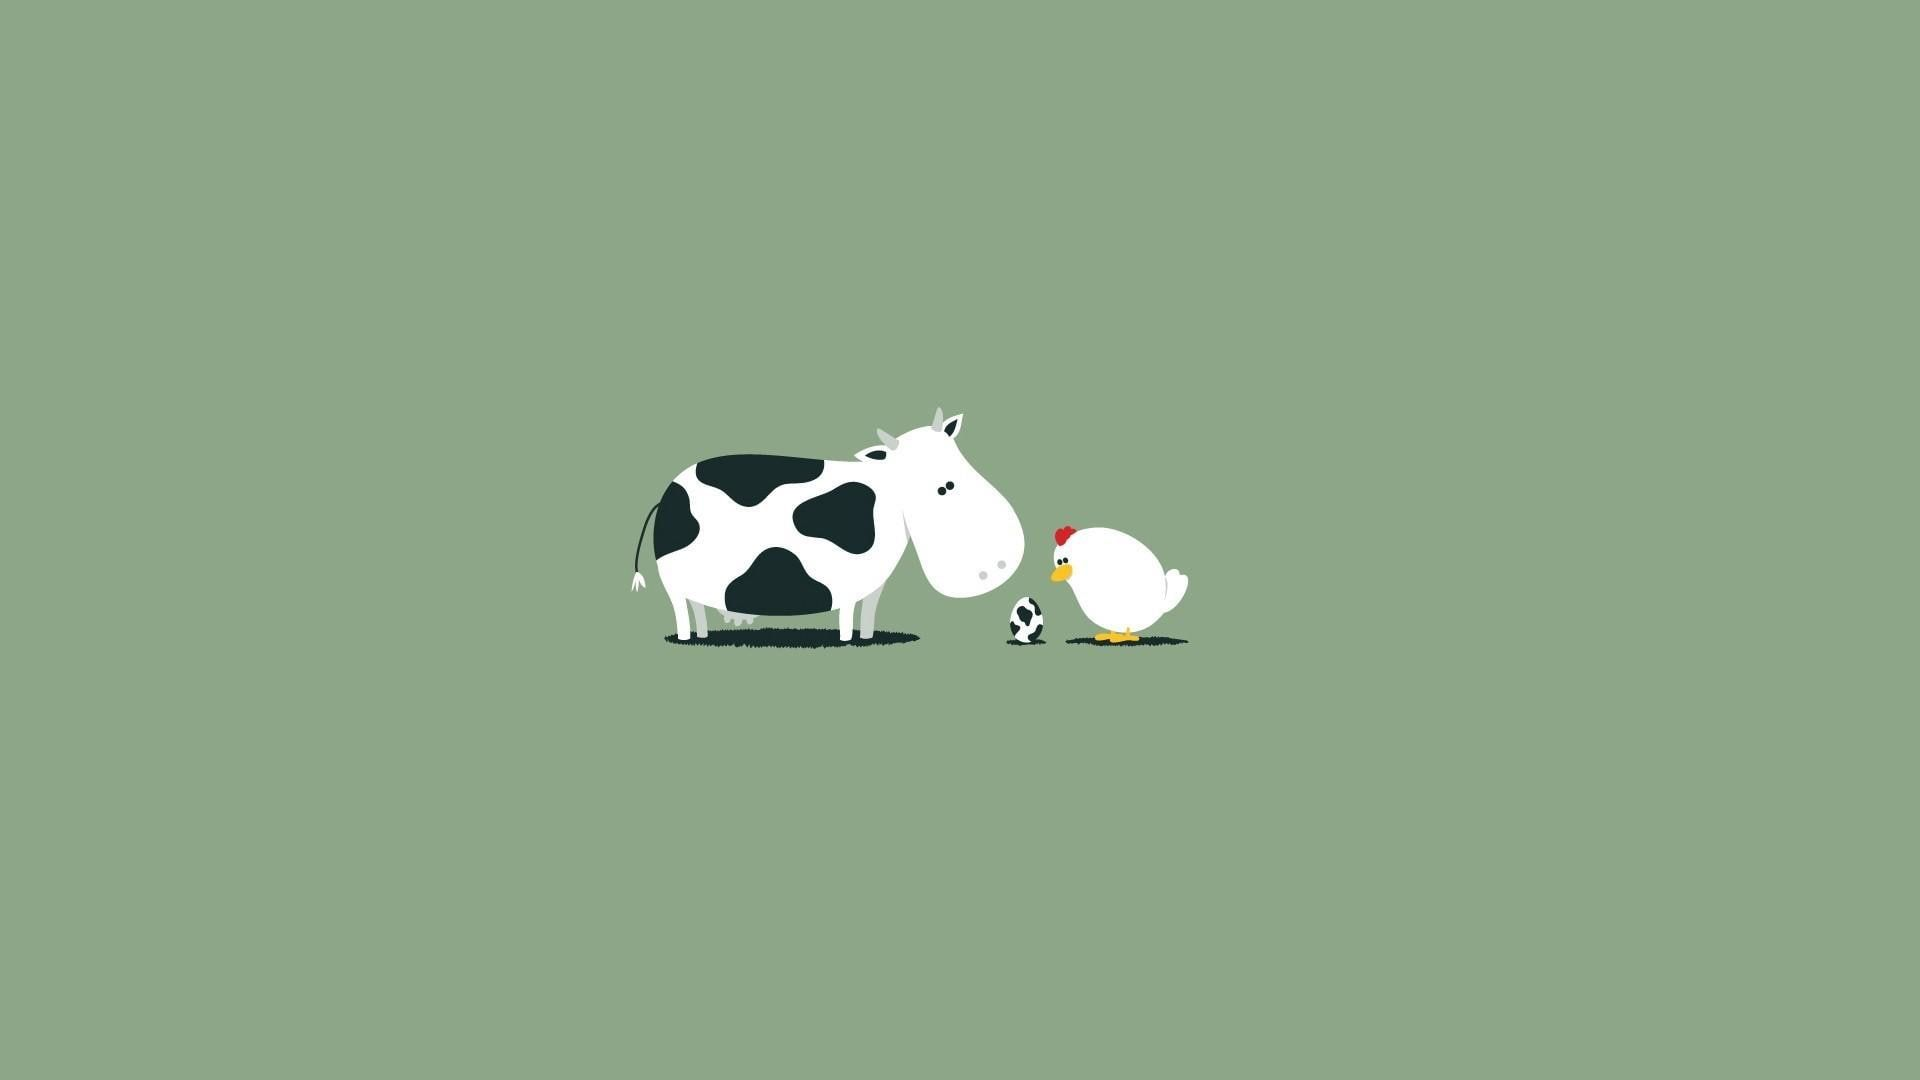 Cow, chicken and the egg, cow and hen illustration #funny #1920x1080 #chicken #1080P #wallpaper #hdwallpaper #desktop